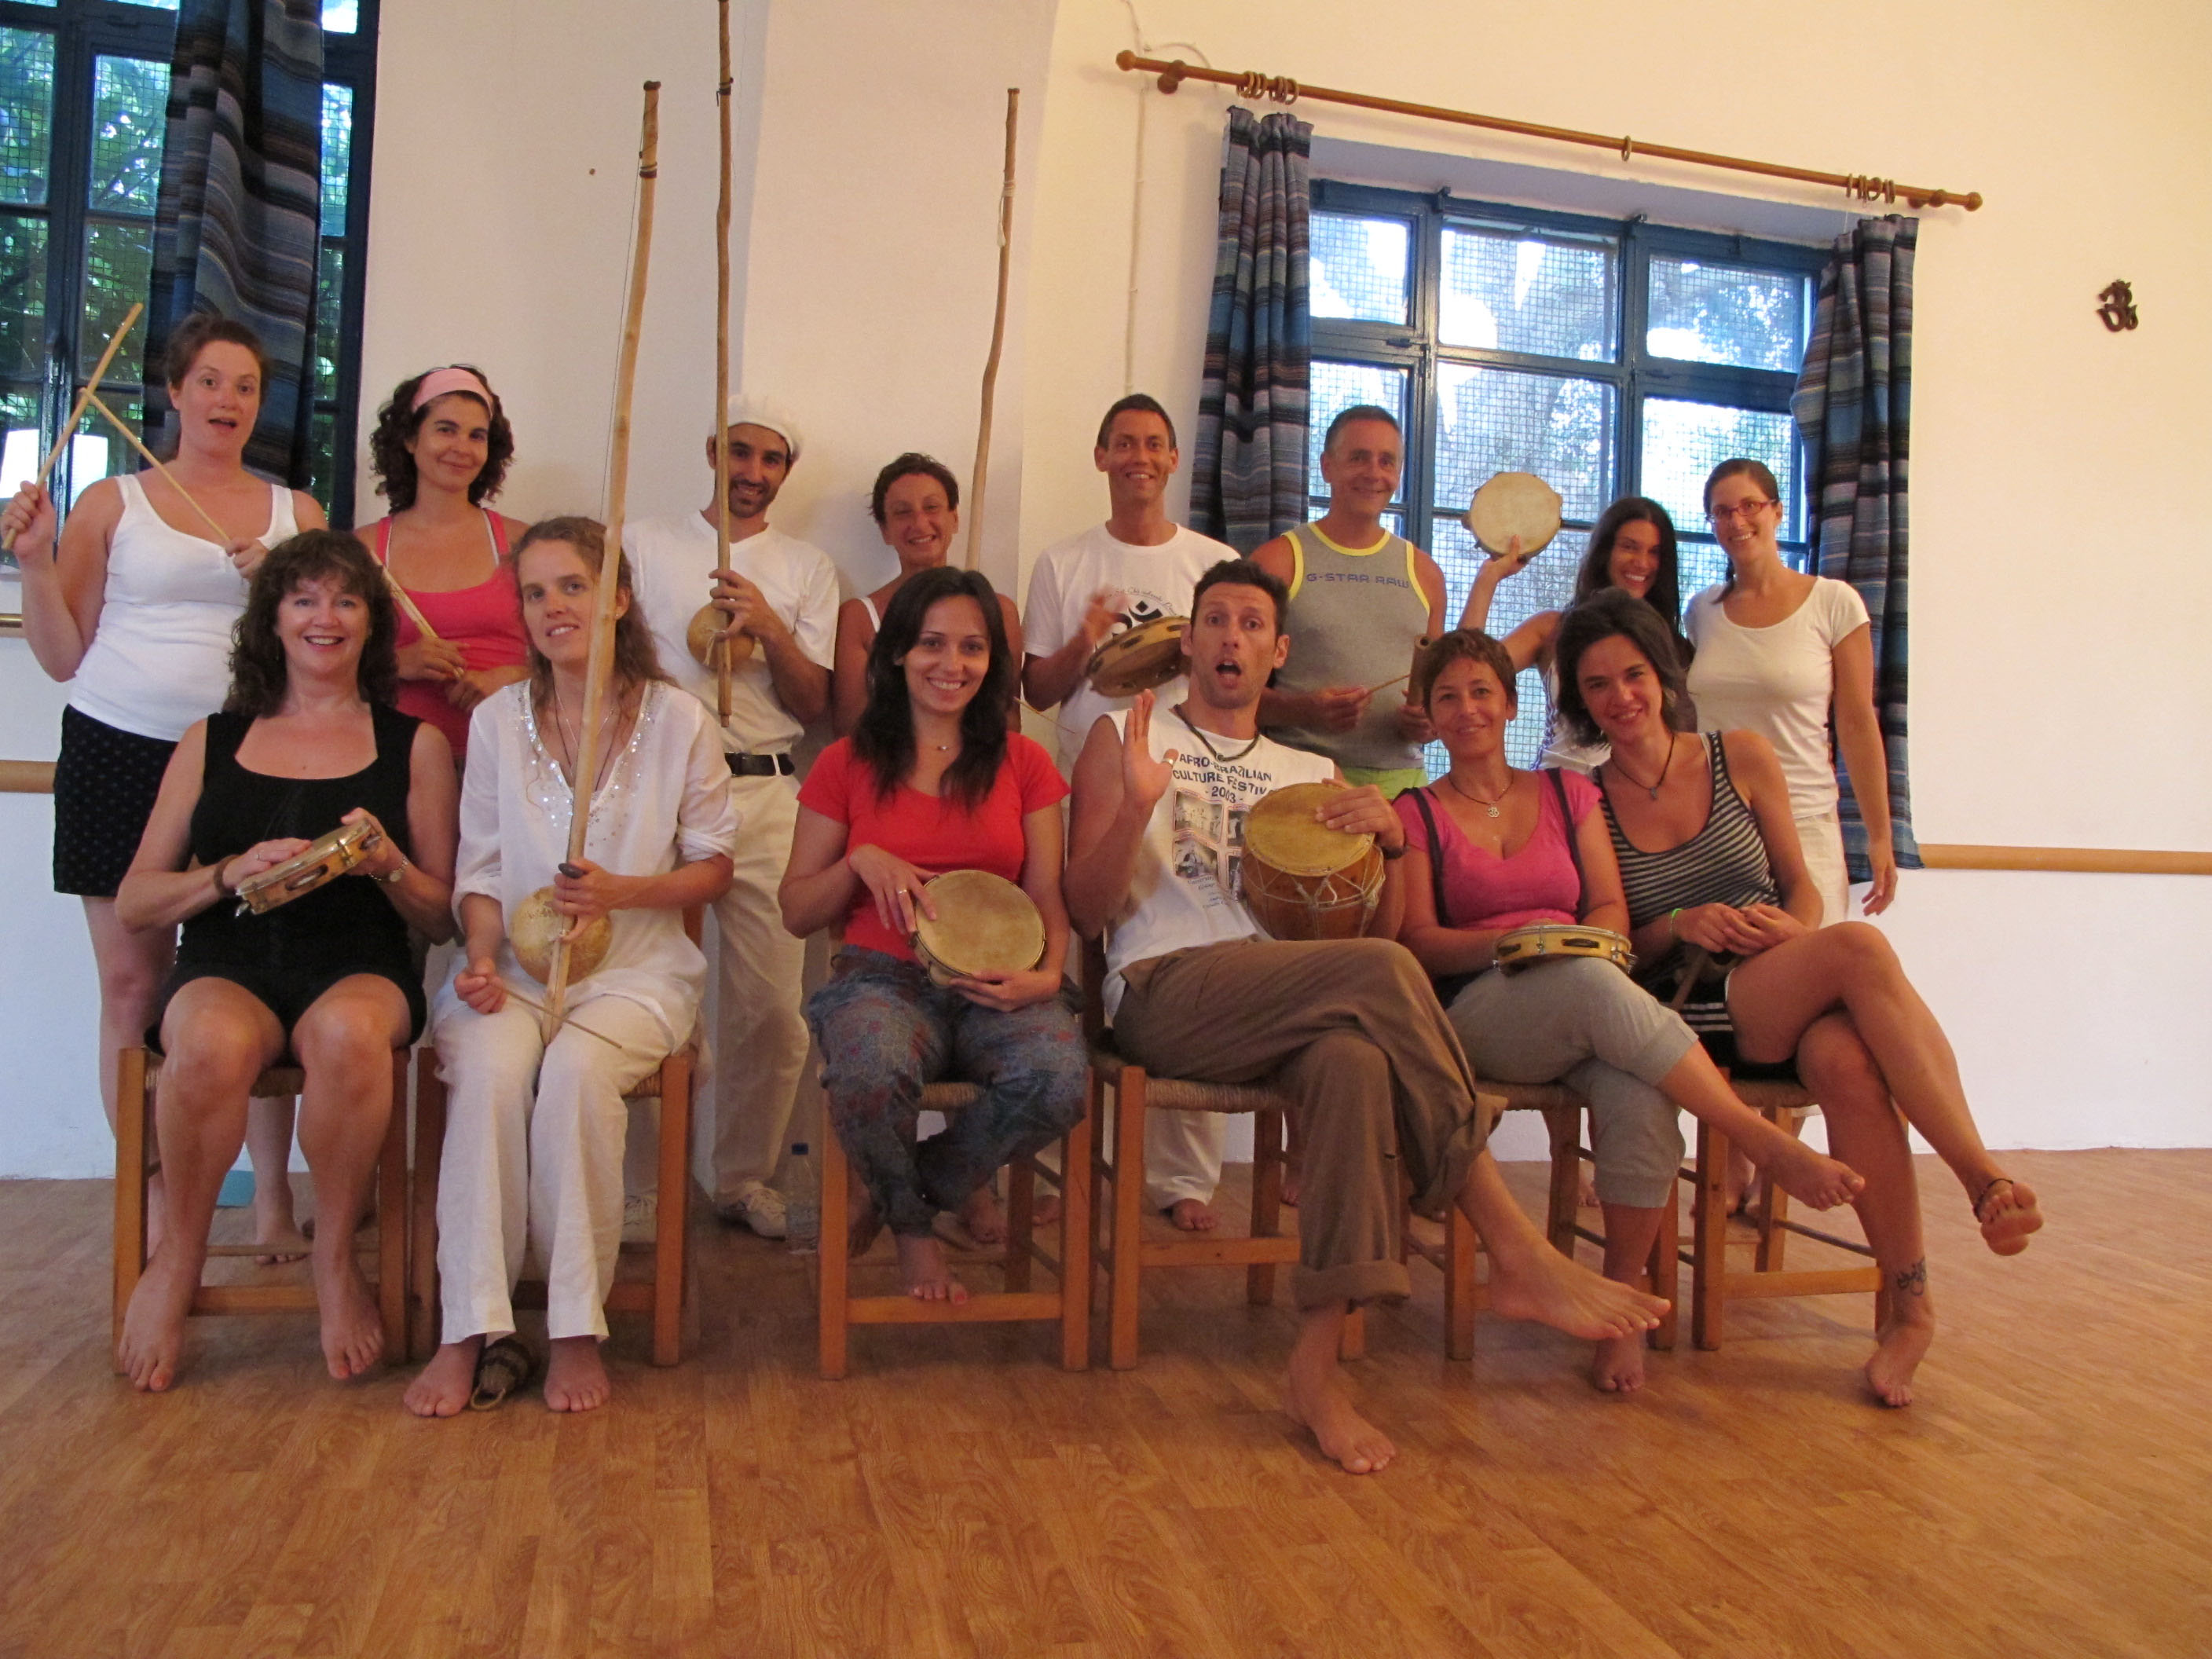 capOeira grOup aug 2011 reduced size